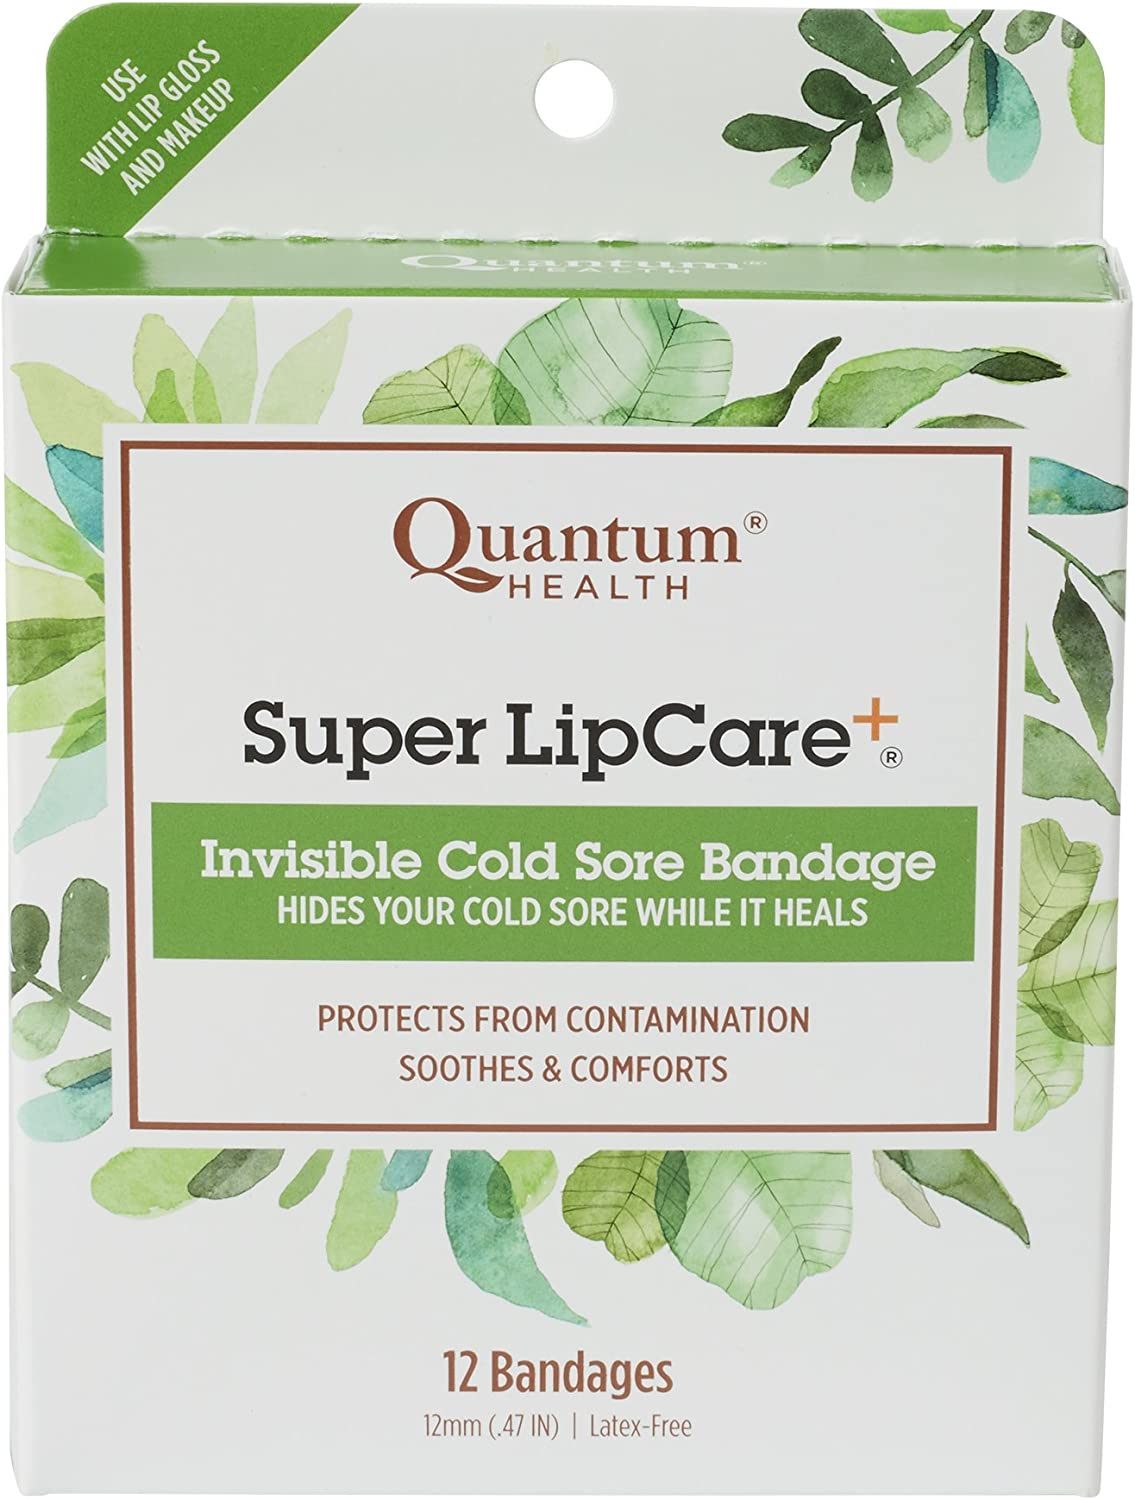 Quantum Health Super LipCare+ Invisible Cold Sore/Fever Blister Bandages - Soothes and Protects, Helps Prevent Contamination and Hide Sores, 12 Ct: Health & Personal Care